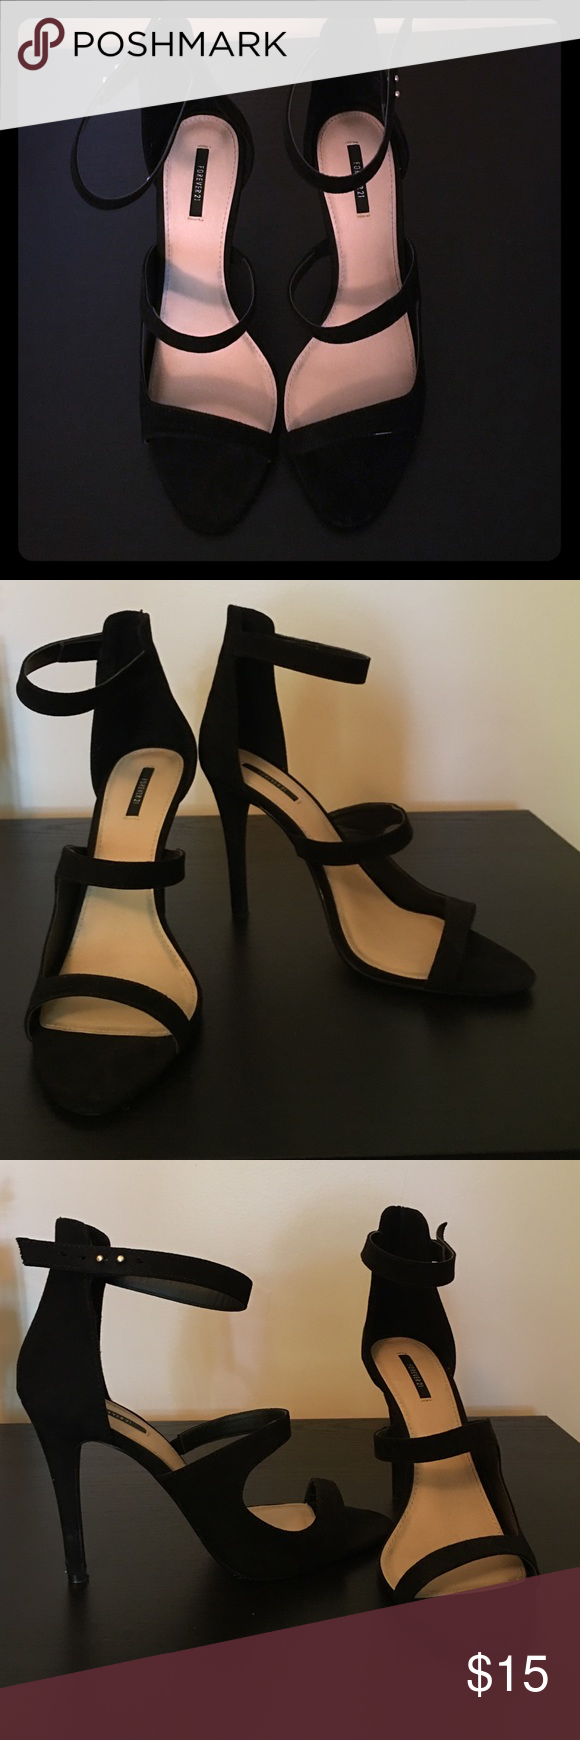 Forever 21 Heels Minor wear and tear, only worn a couple times. Great for going out! Forever 21 Shoes Heels